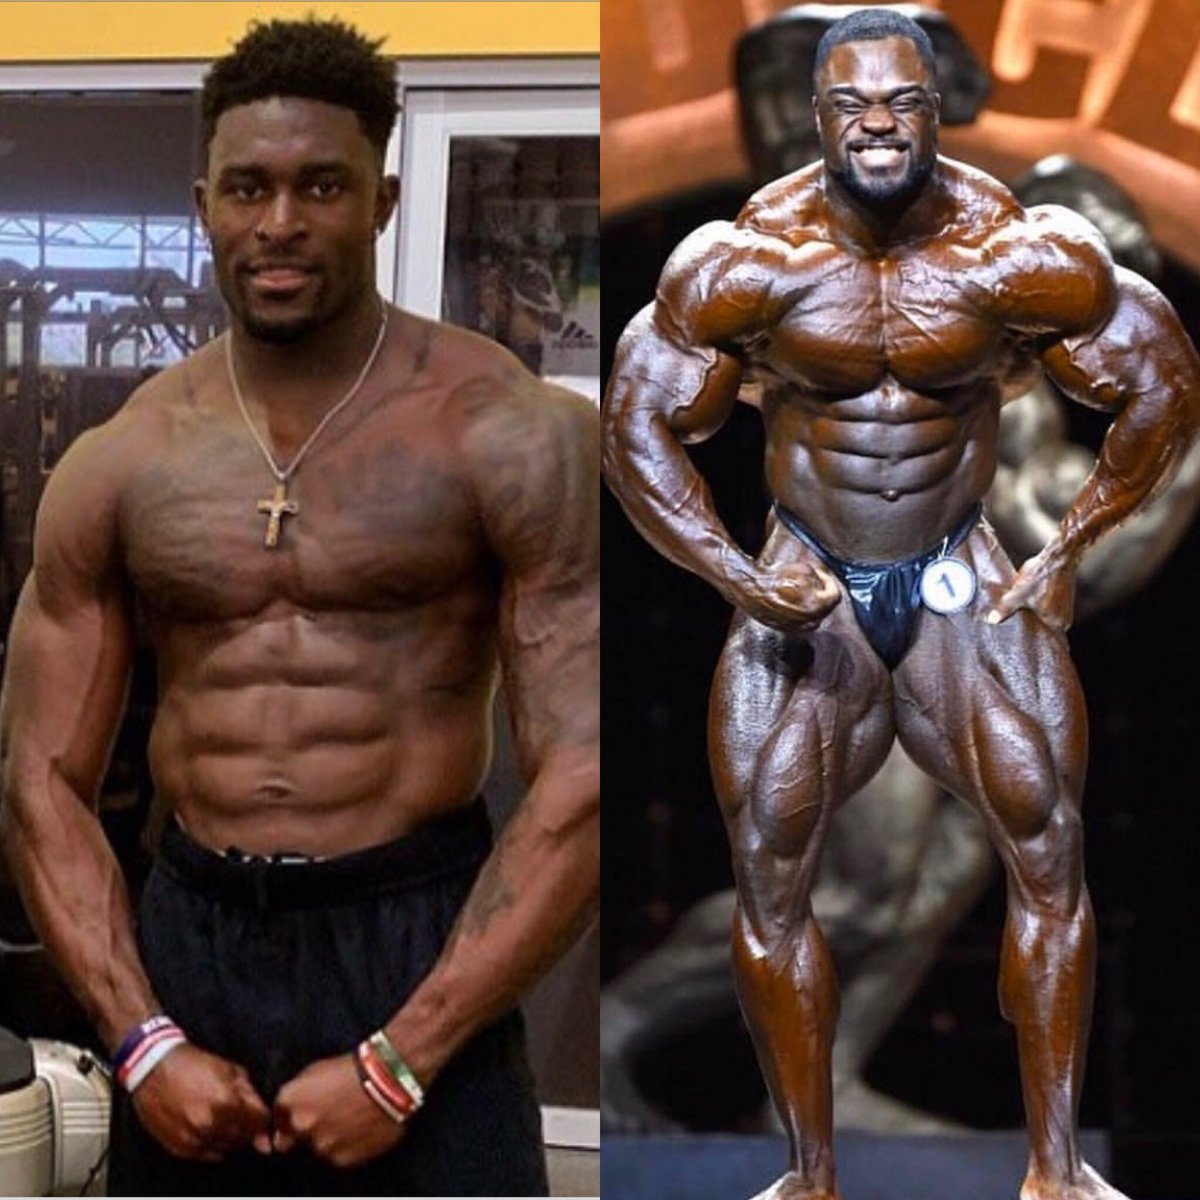 Justin Mihaly Na Twitteru Someone During The Nfl Combine Stated Dk Metcalf Was 1 6 Body Fat While He Does Have A Very Impressive Physique For An Nfl Player That S Completely Impossible Here S